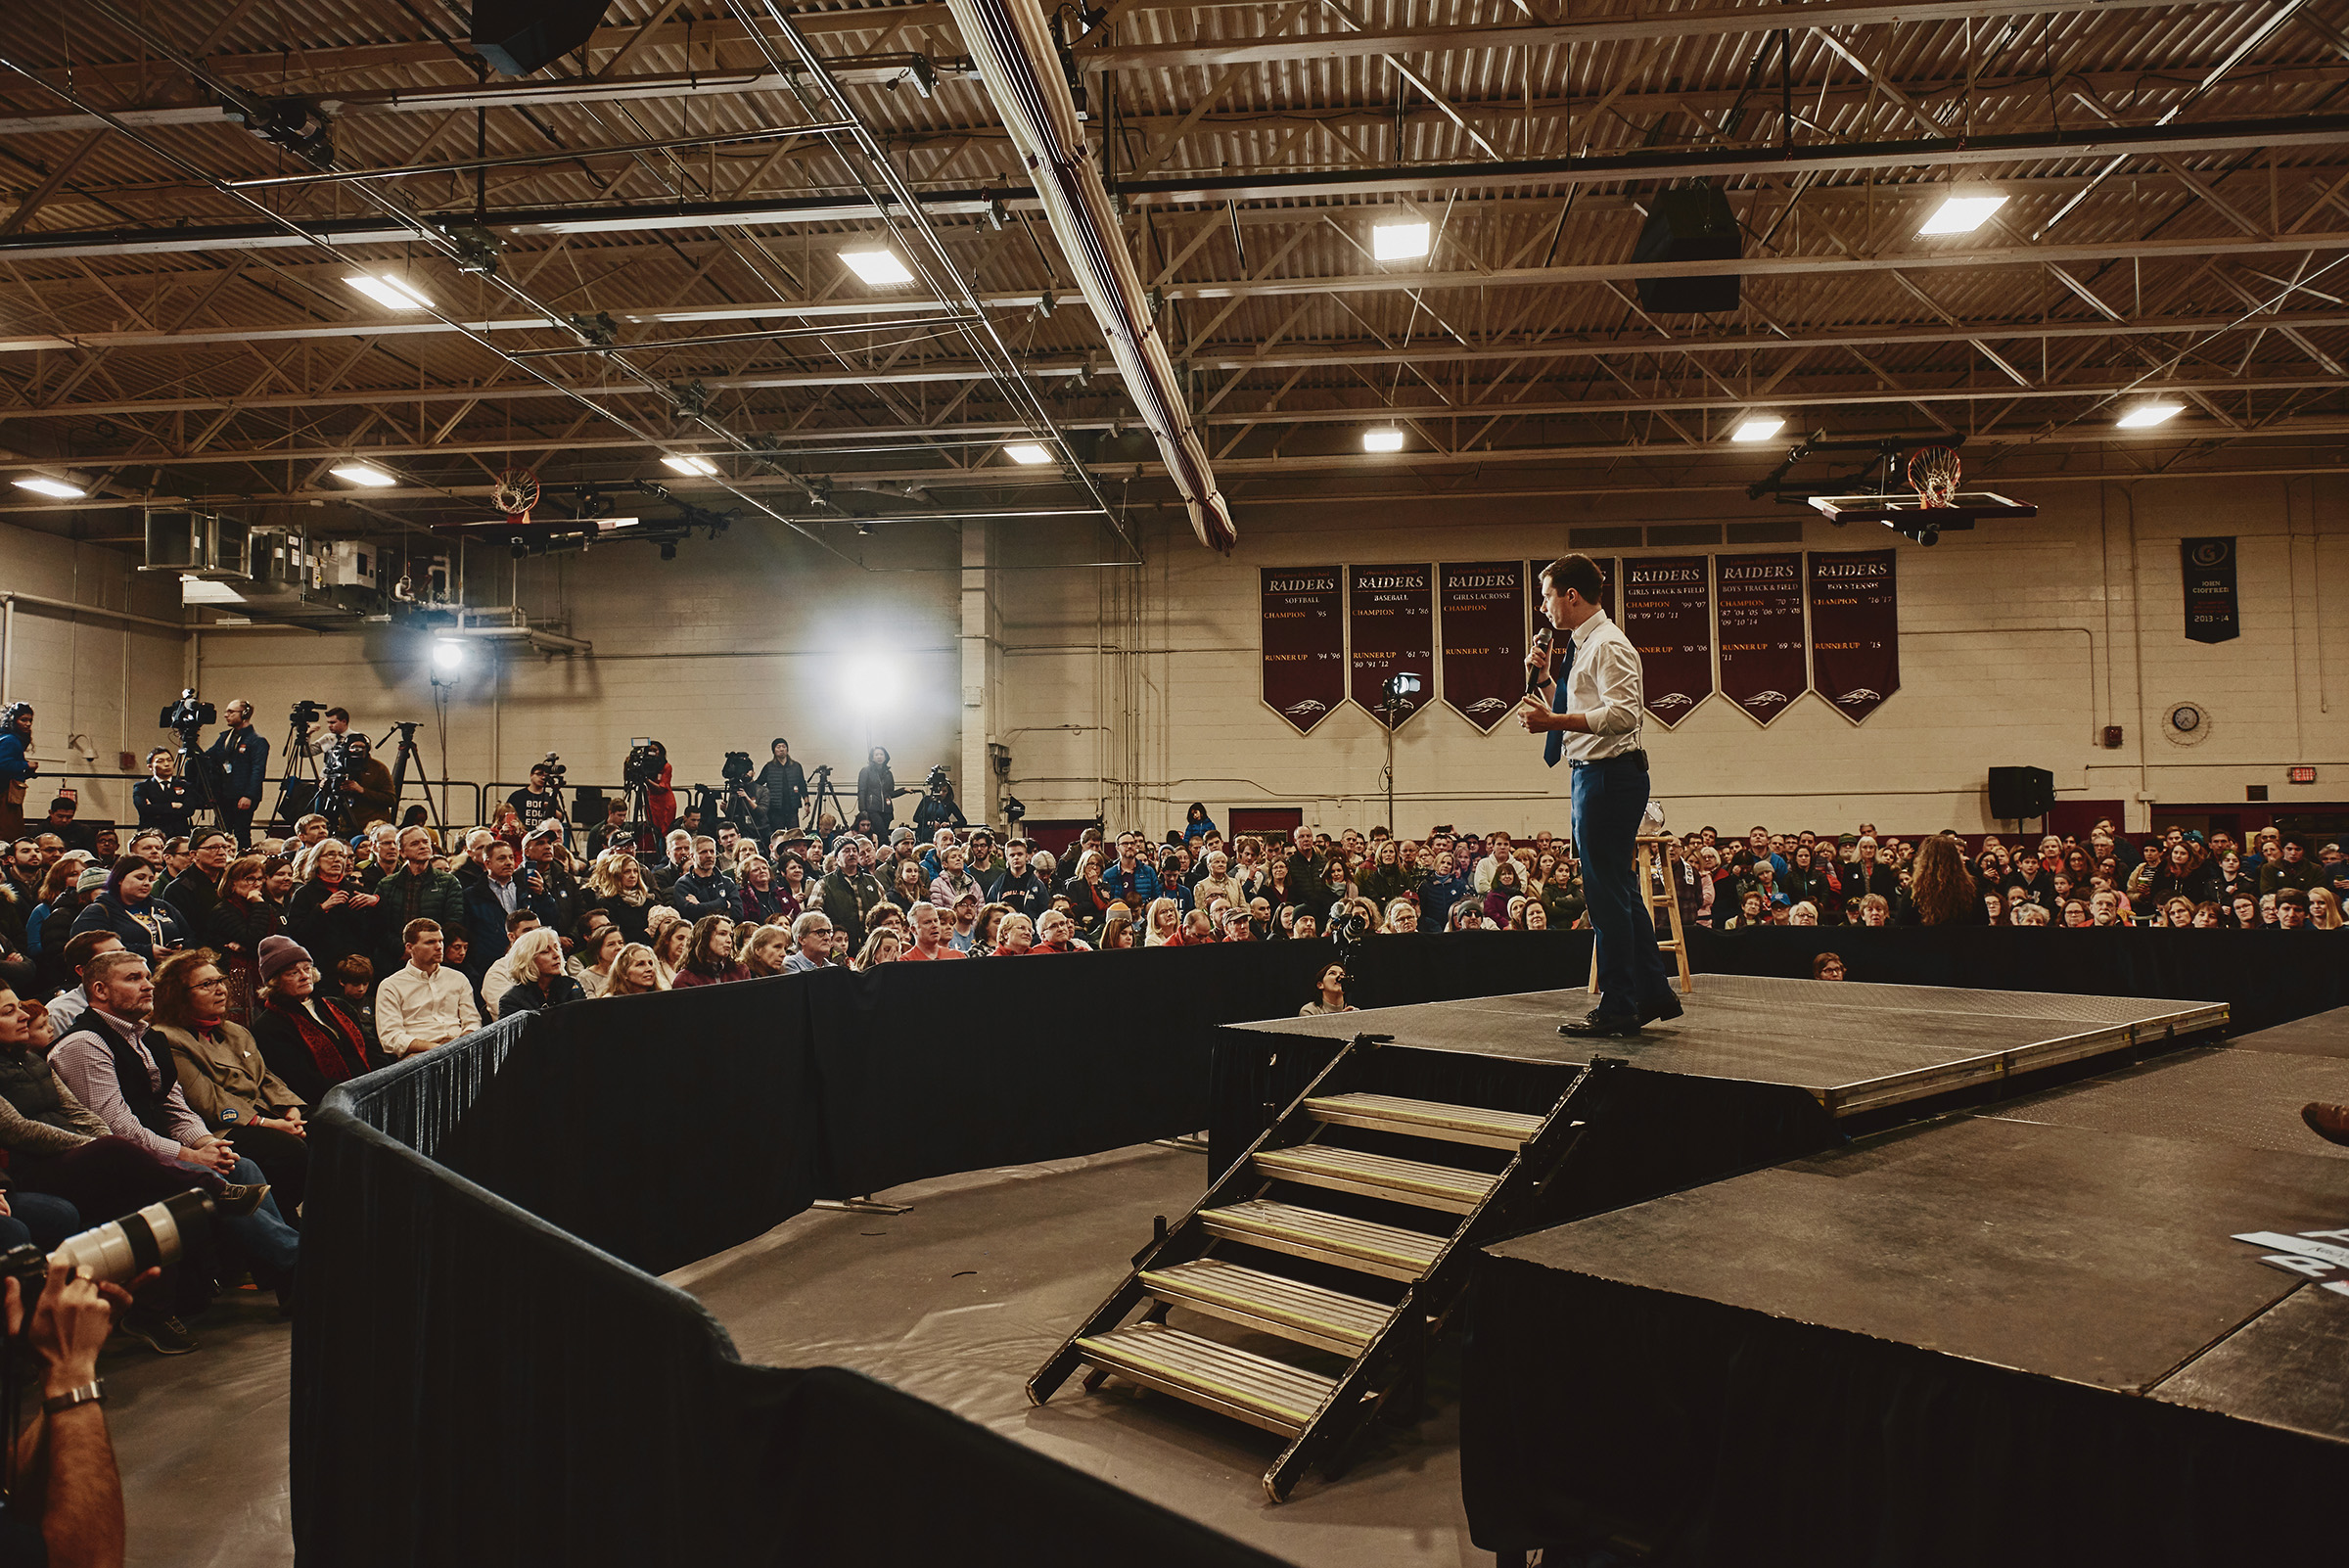 Mayor Pete Buttigieg speaking at his GOTV Rally at the Lebanon High School in Lebanon, N.H. on Feb. 8, 2020.